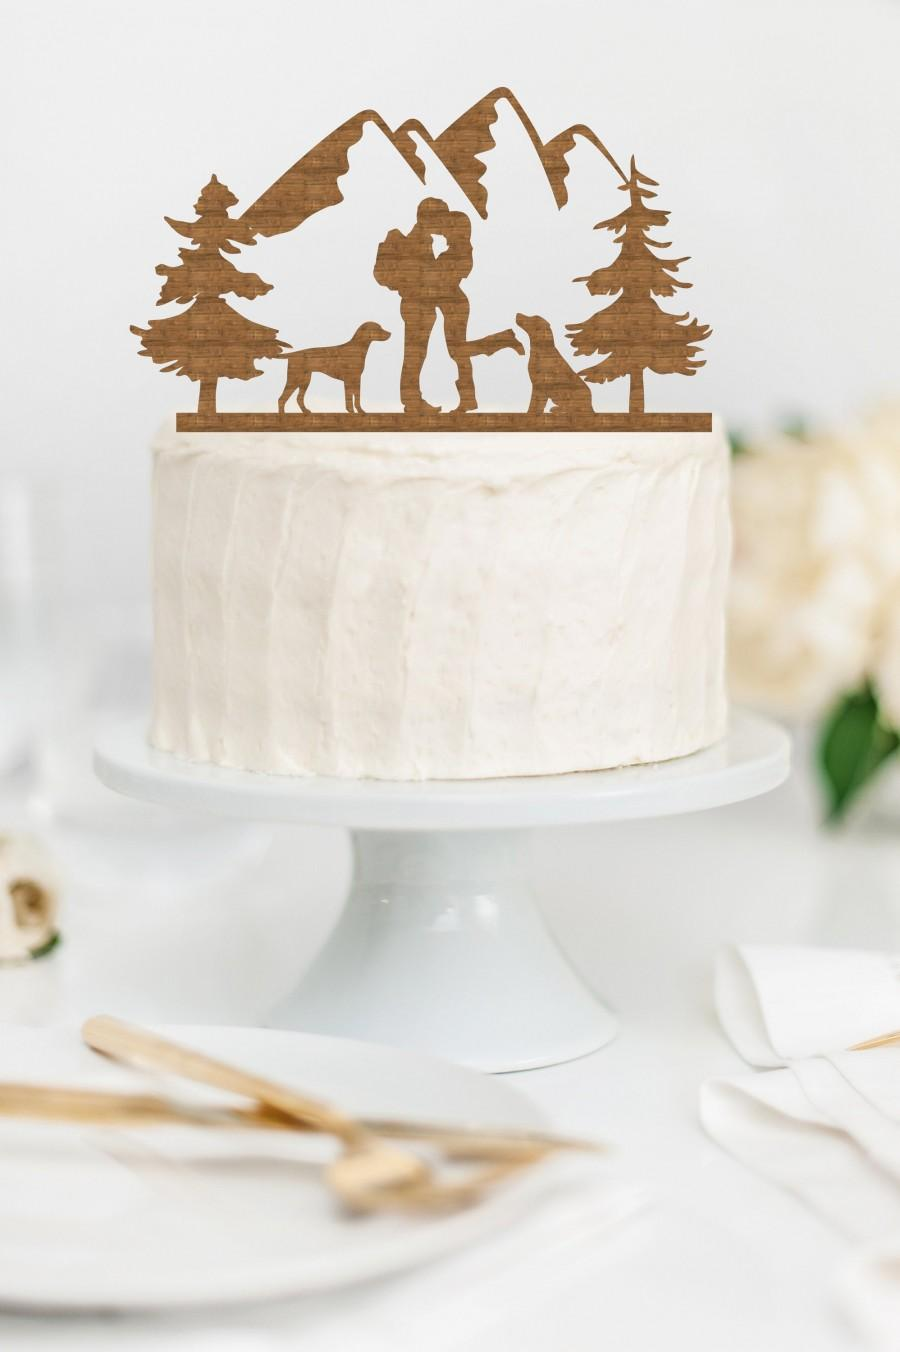 Свадьба - HIKING COUPLE with DOGS Wood Wedding Cake Topper / Backpacking outdoor bride groom cake topper / camping cake topper